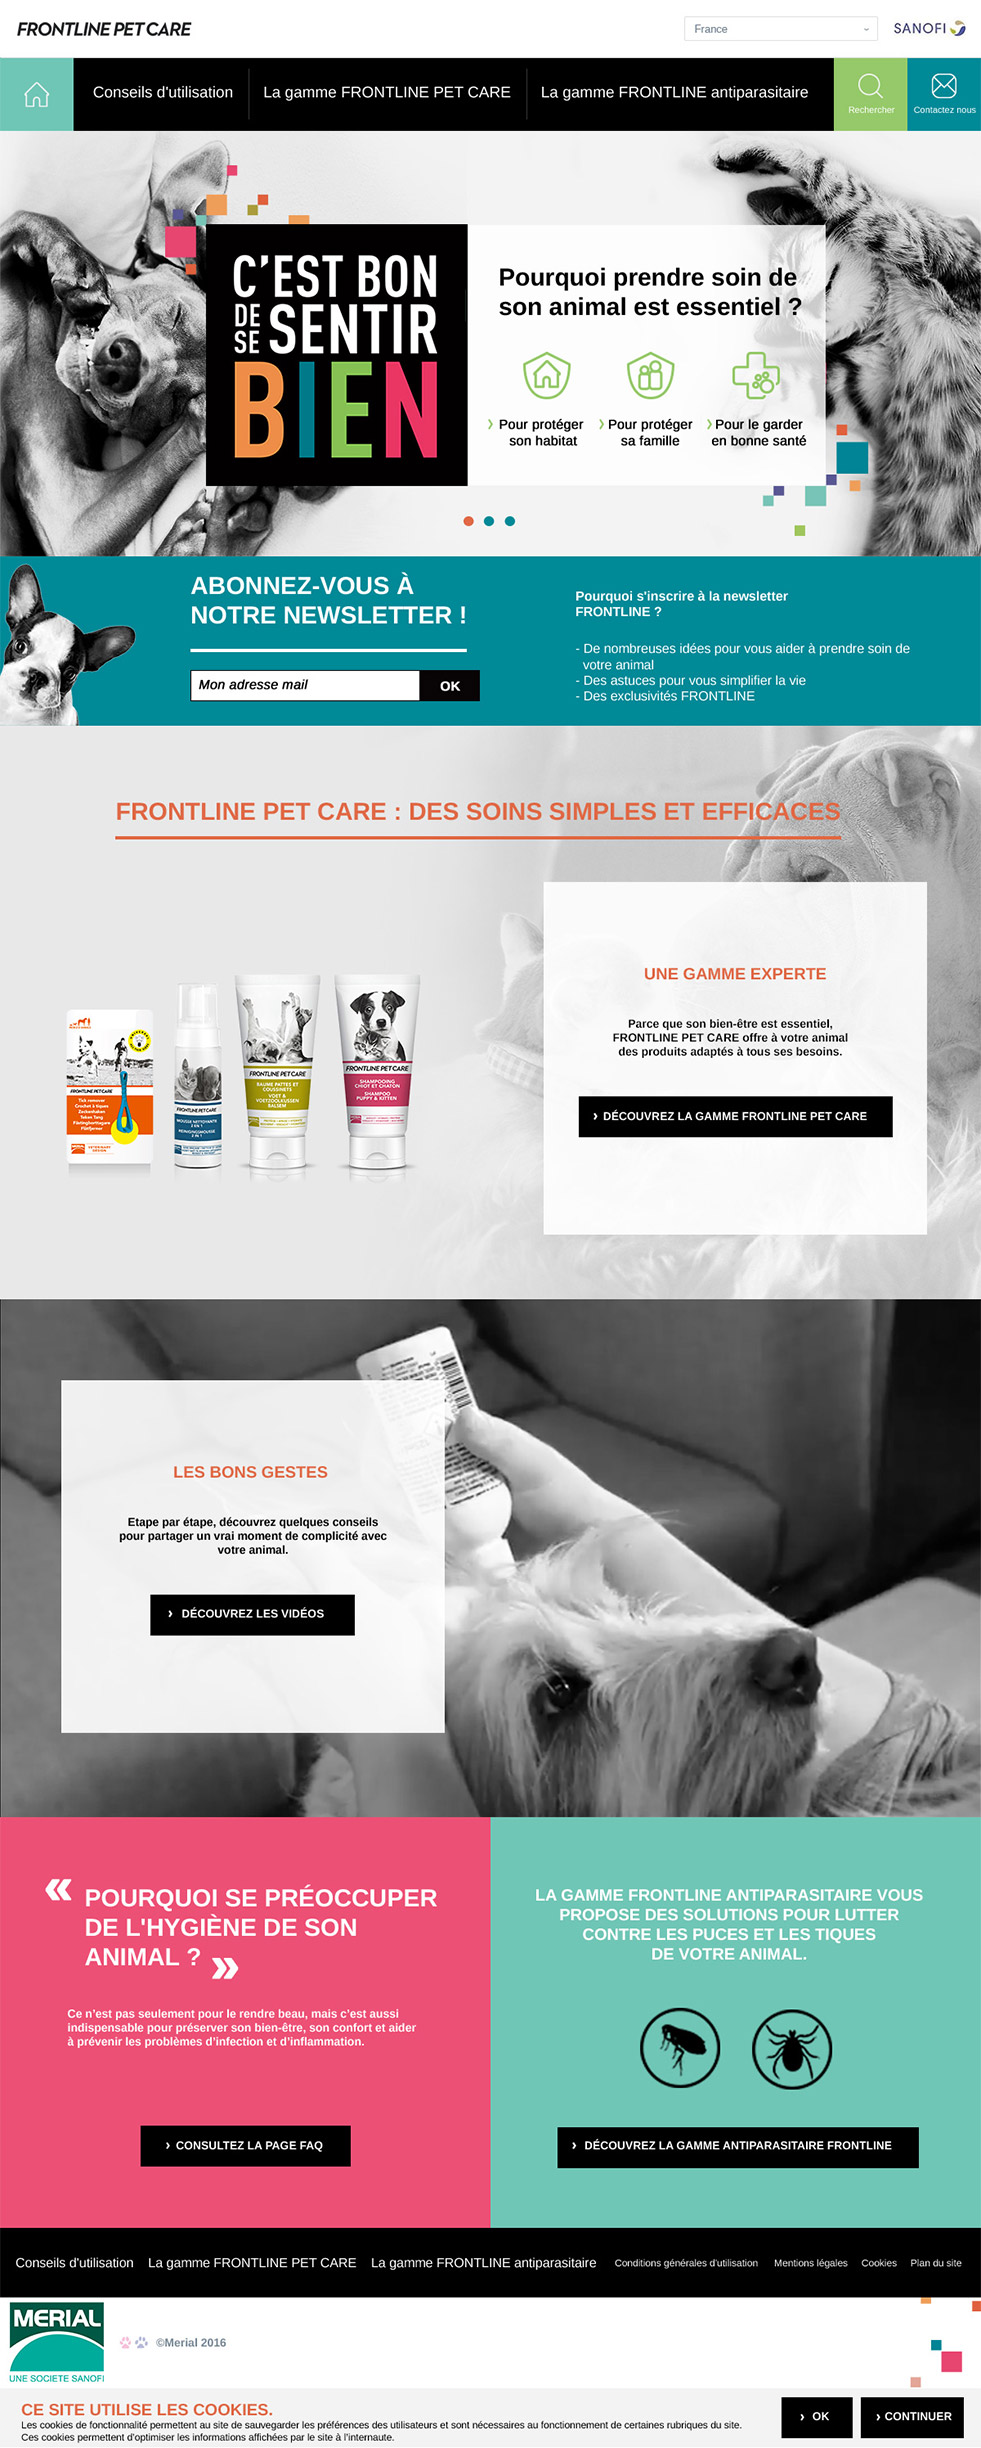 monkees work pet care